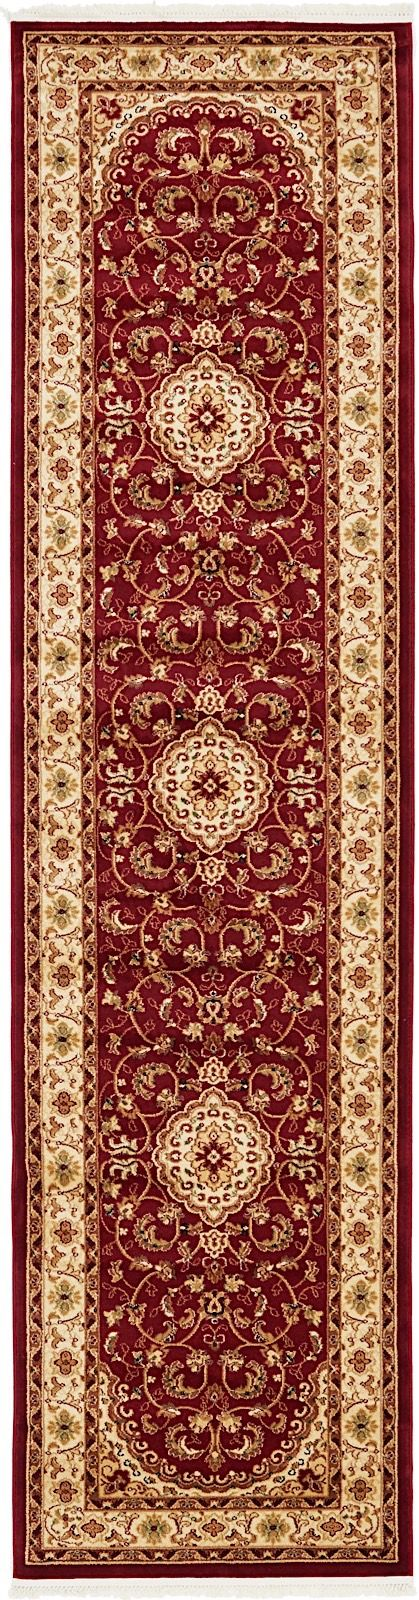 rugpal sevilla traditional area rug collection